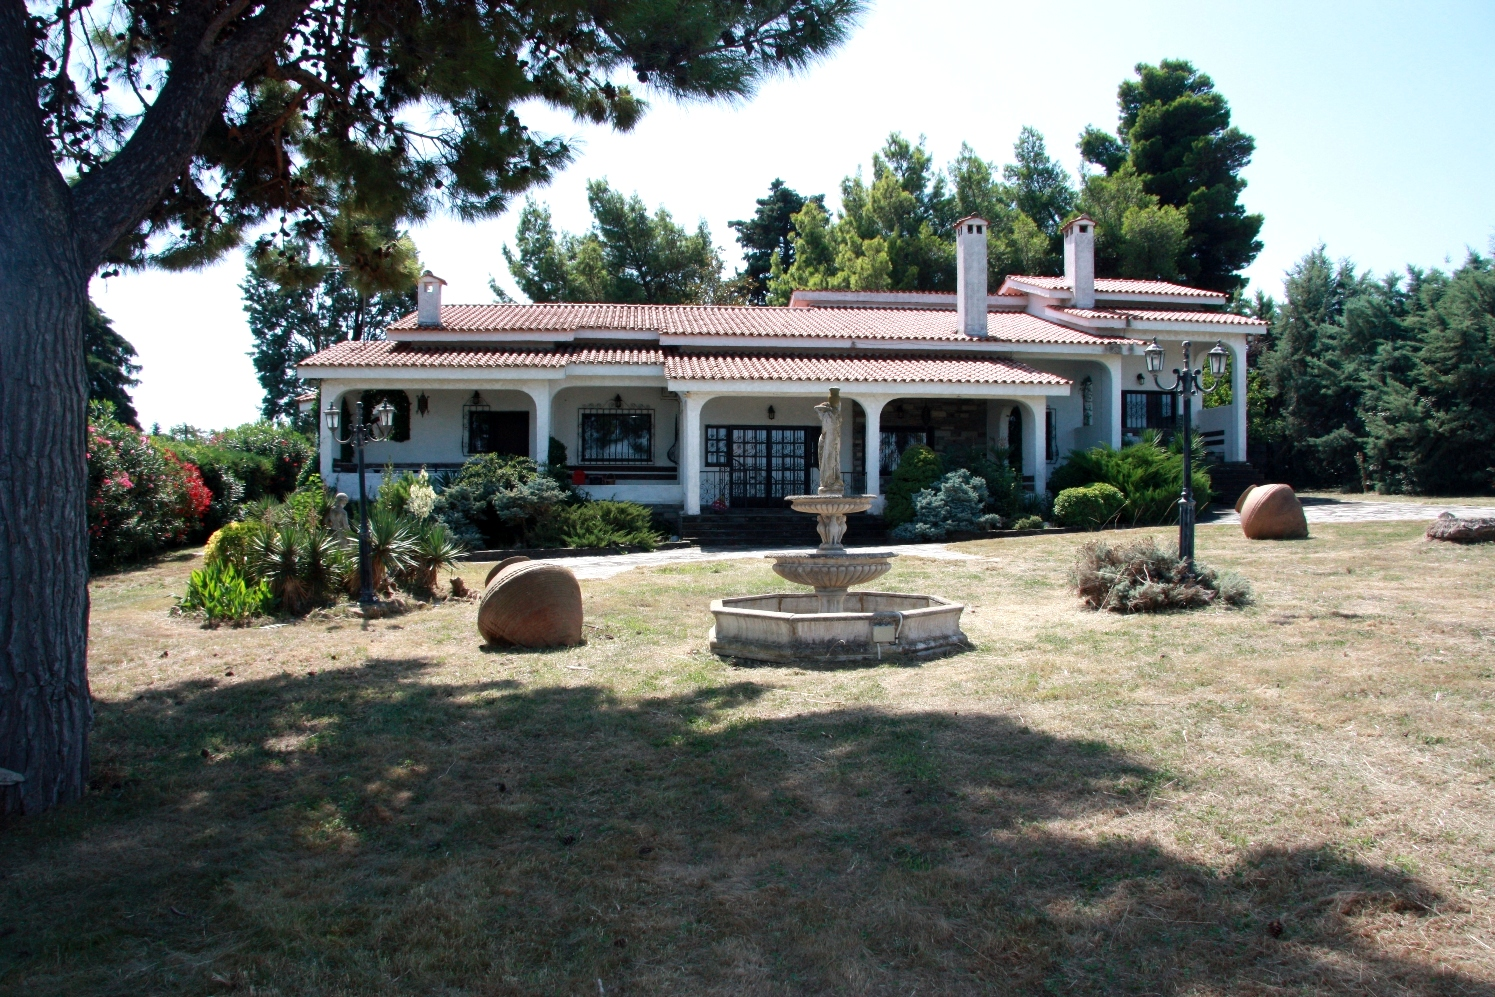 Villa Mediteranian, Central Macedonia, Greece - traditional mediteranian villa with stunning views